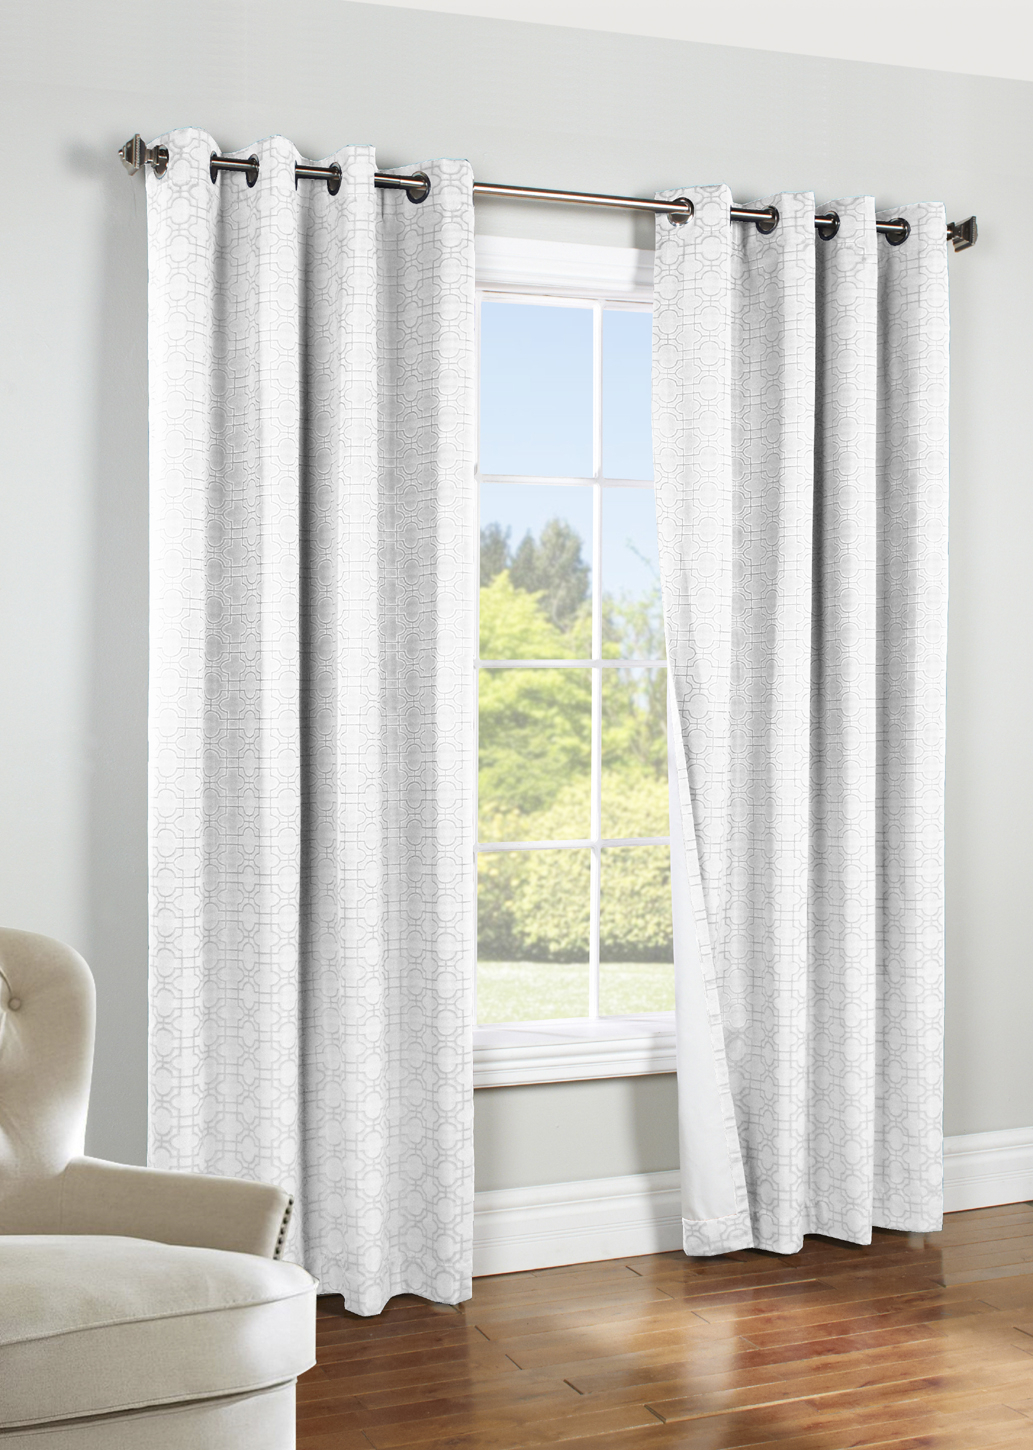 Irongate Insulated Blackout Grommet Curtain Panel – Thermaplus Inside Blackout Grommet Curtain Panels (View 7 of 20)